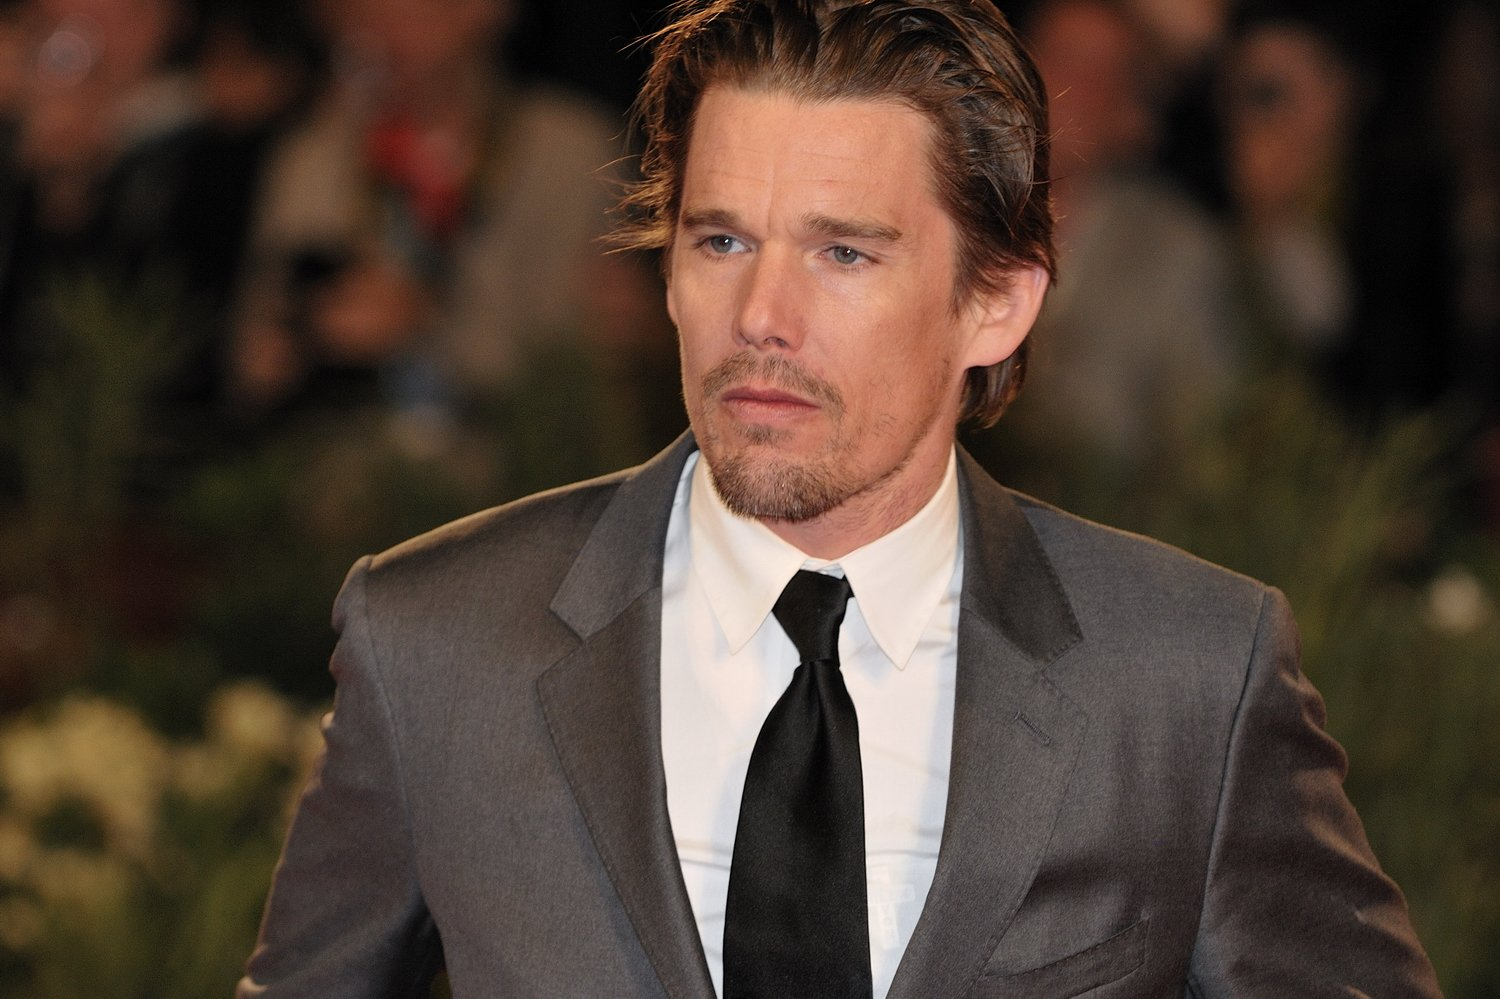 Ethan Hawke Image Source: Wikimedia Commons